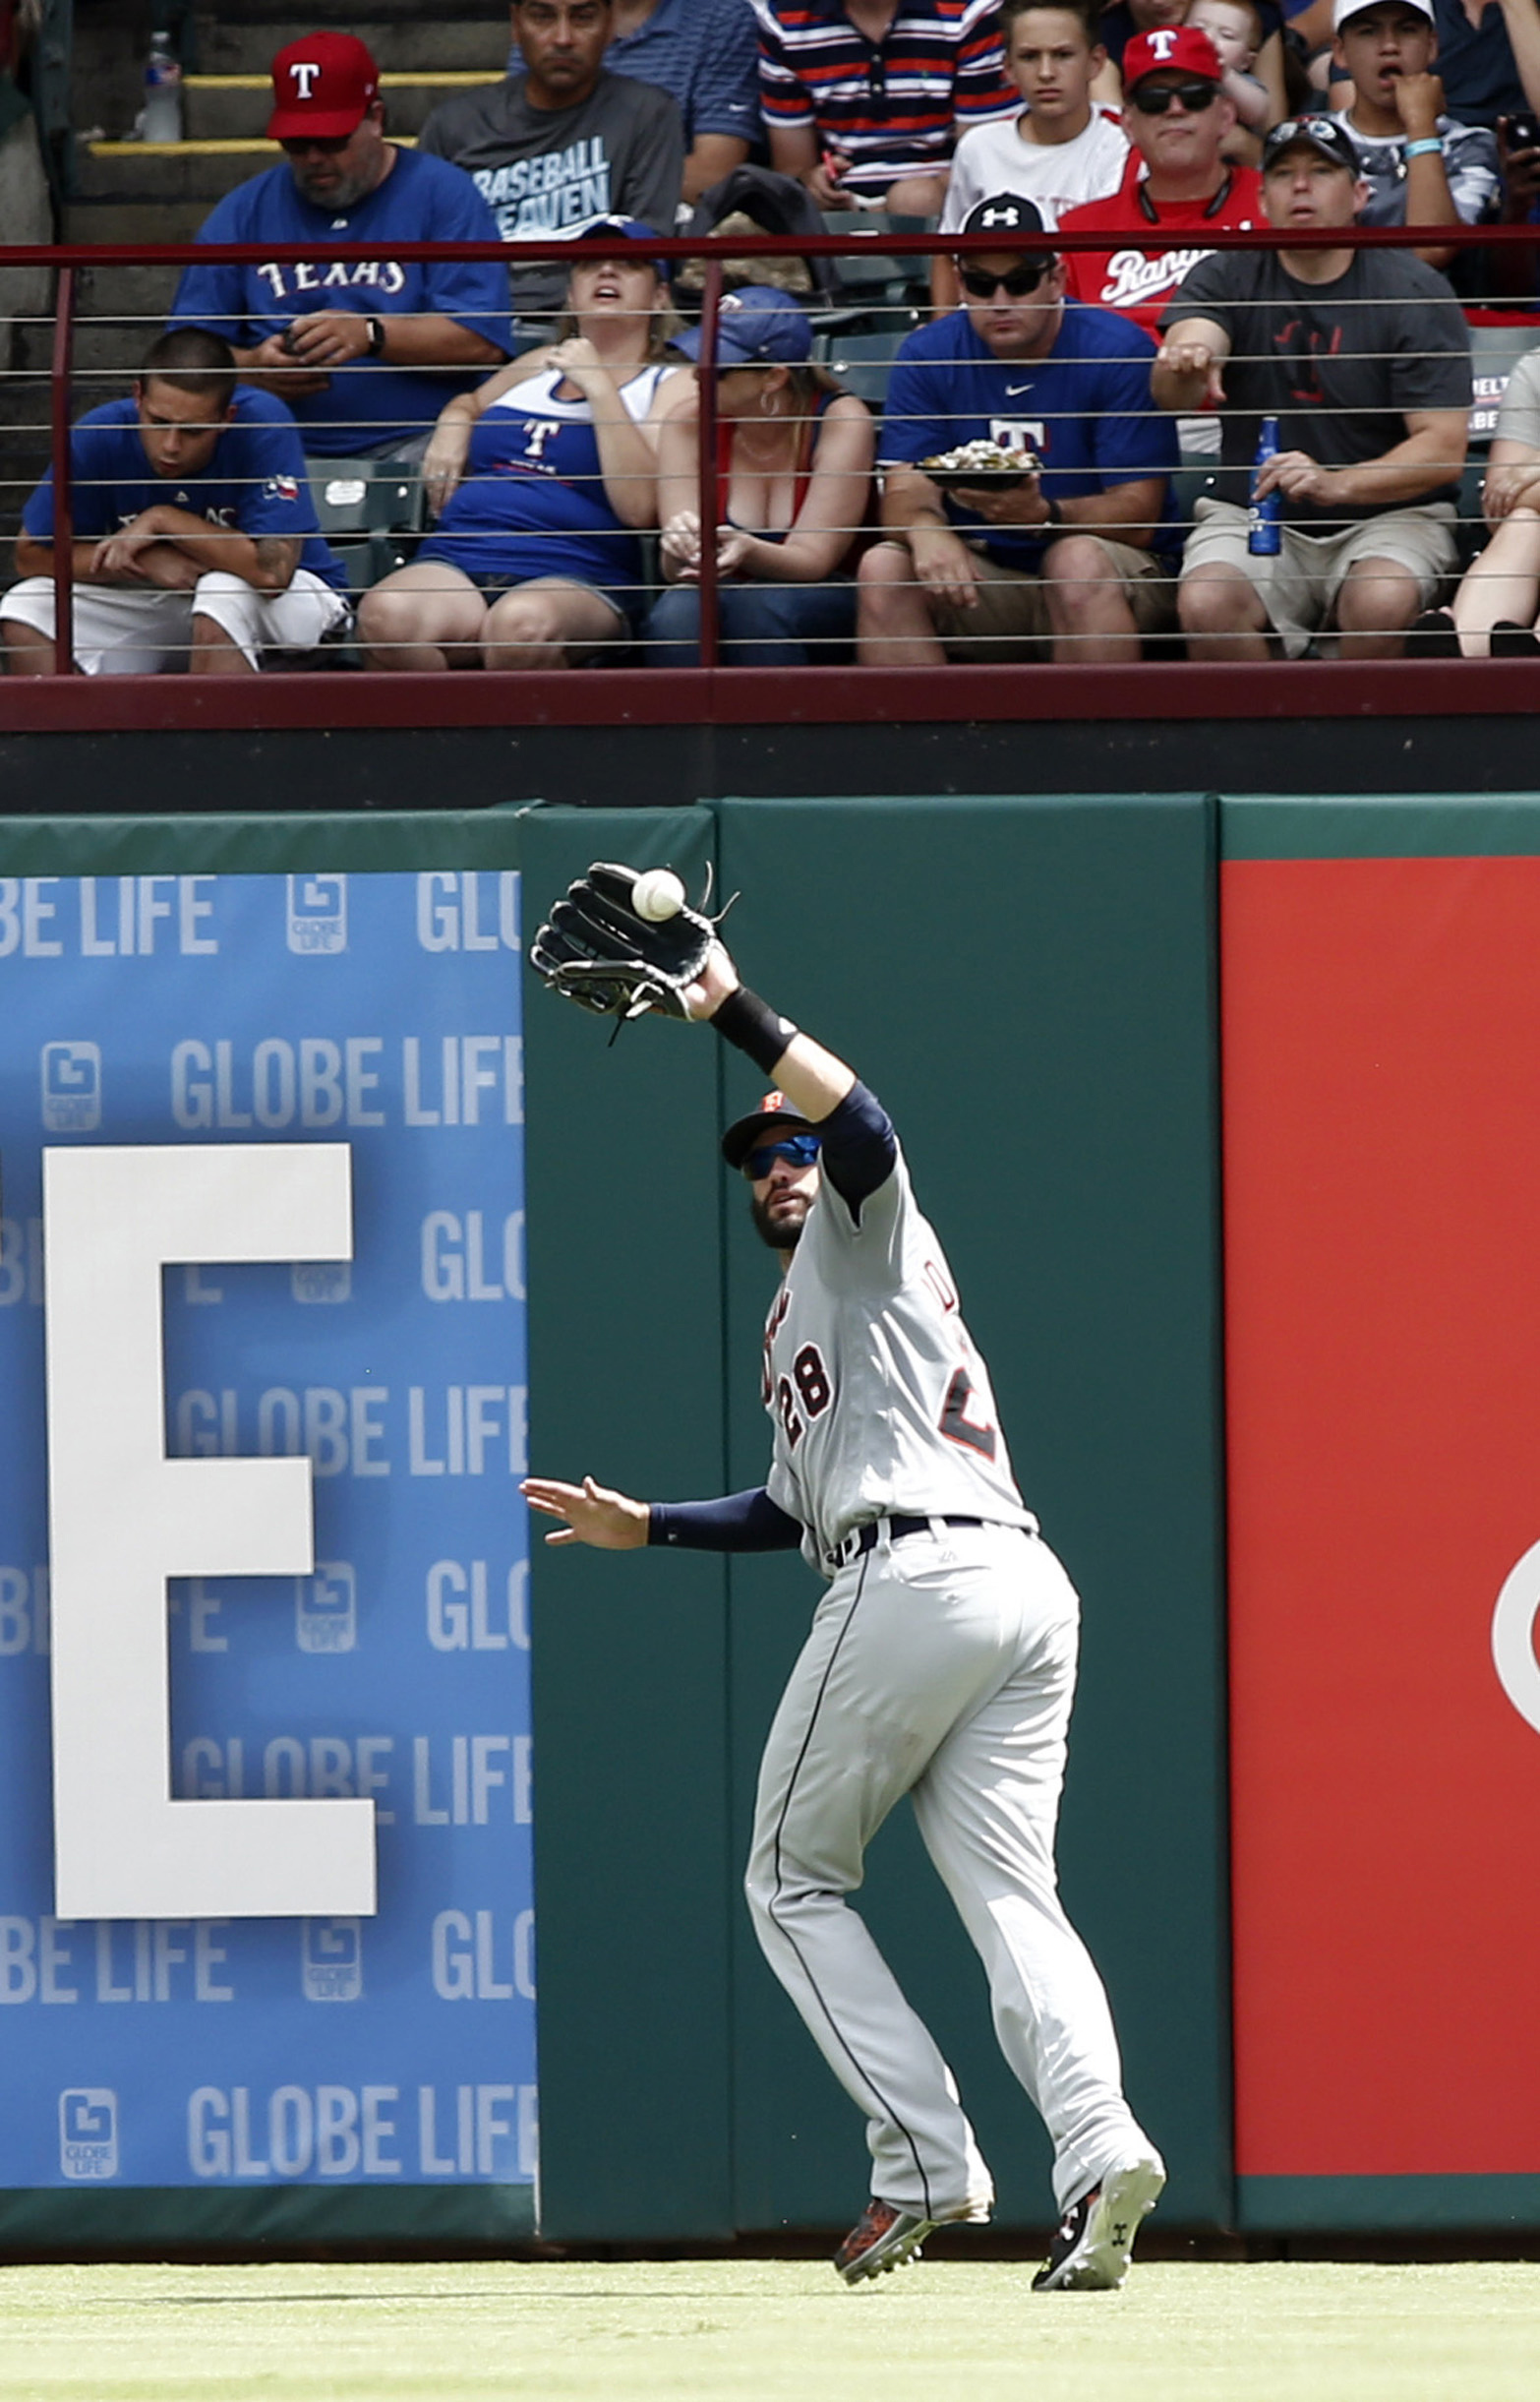 Detroit Tigers right fielder J.D. Martinez makes the catch for the out on a line drive by Texas Rangers' Jurickson Profar during the fifth inning of a baseball game Sunday, Aug. 14, 2016, in Arlington, Texas. (AP Photo/Mike Stone)